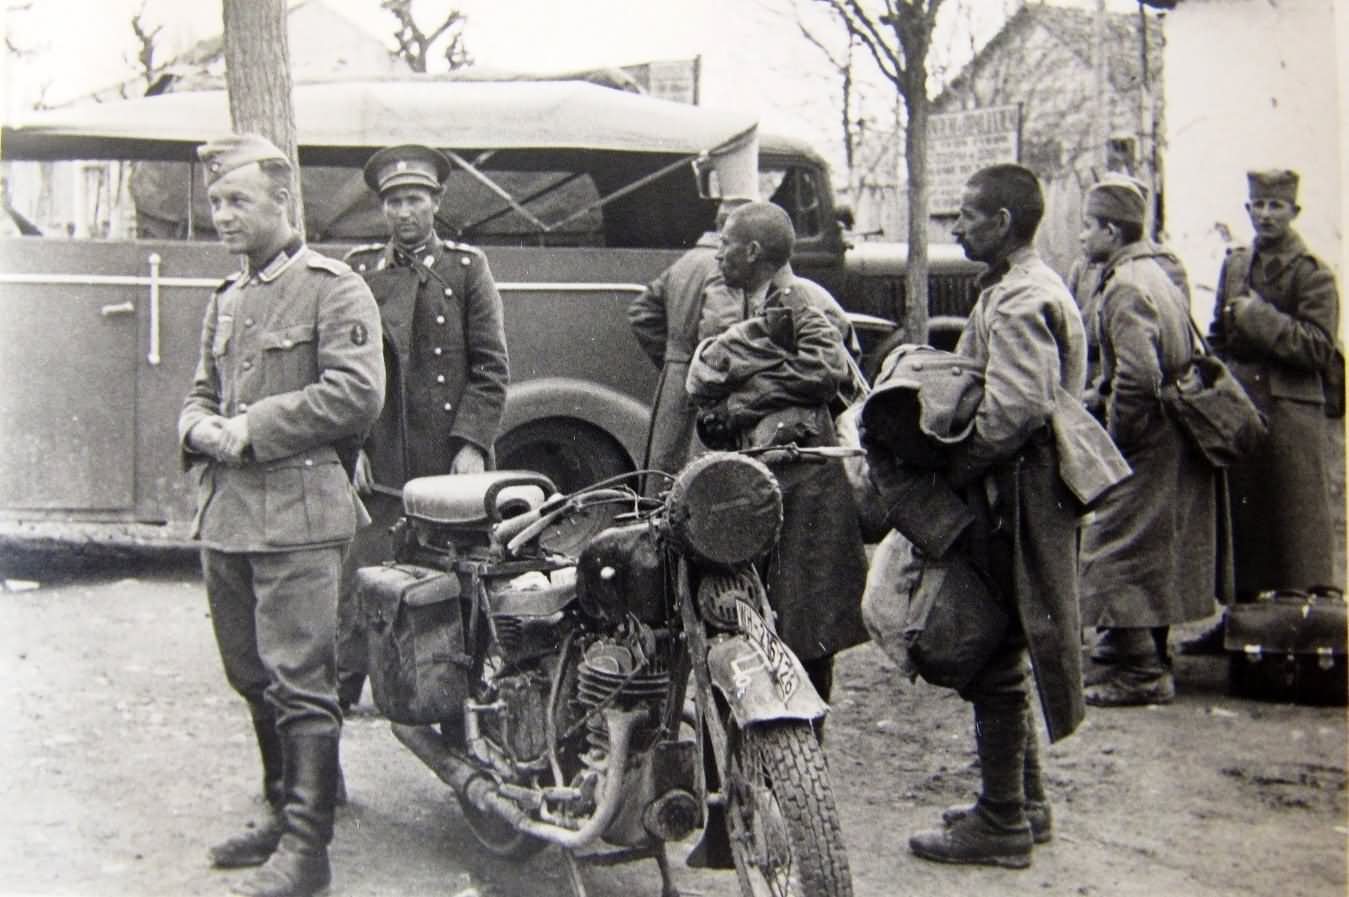 wehrmacht bmw motor and Balkans pow